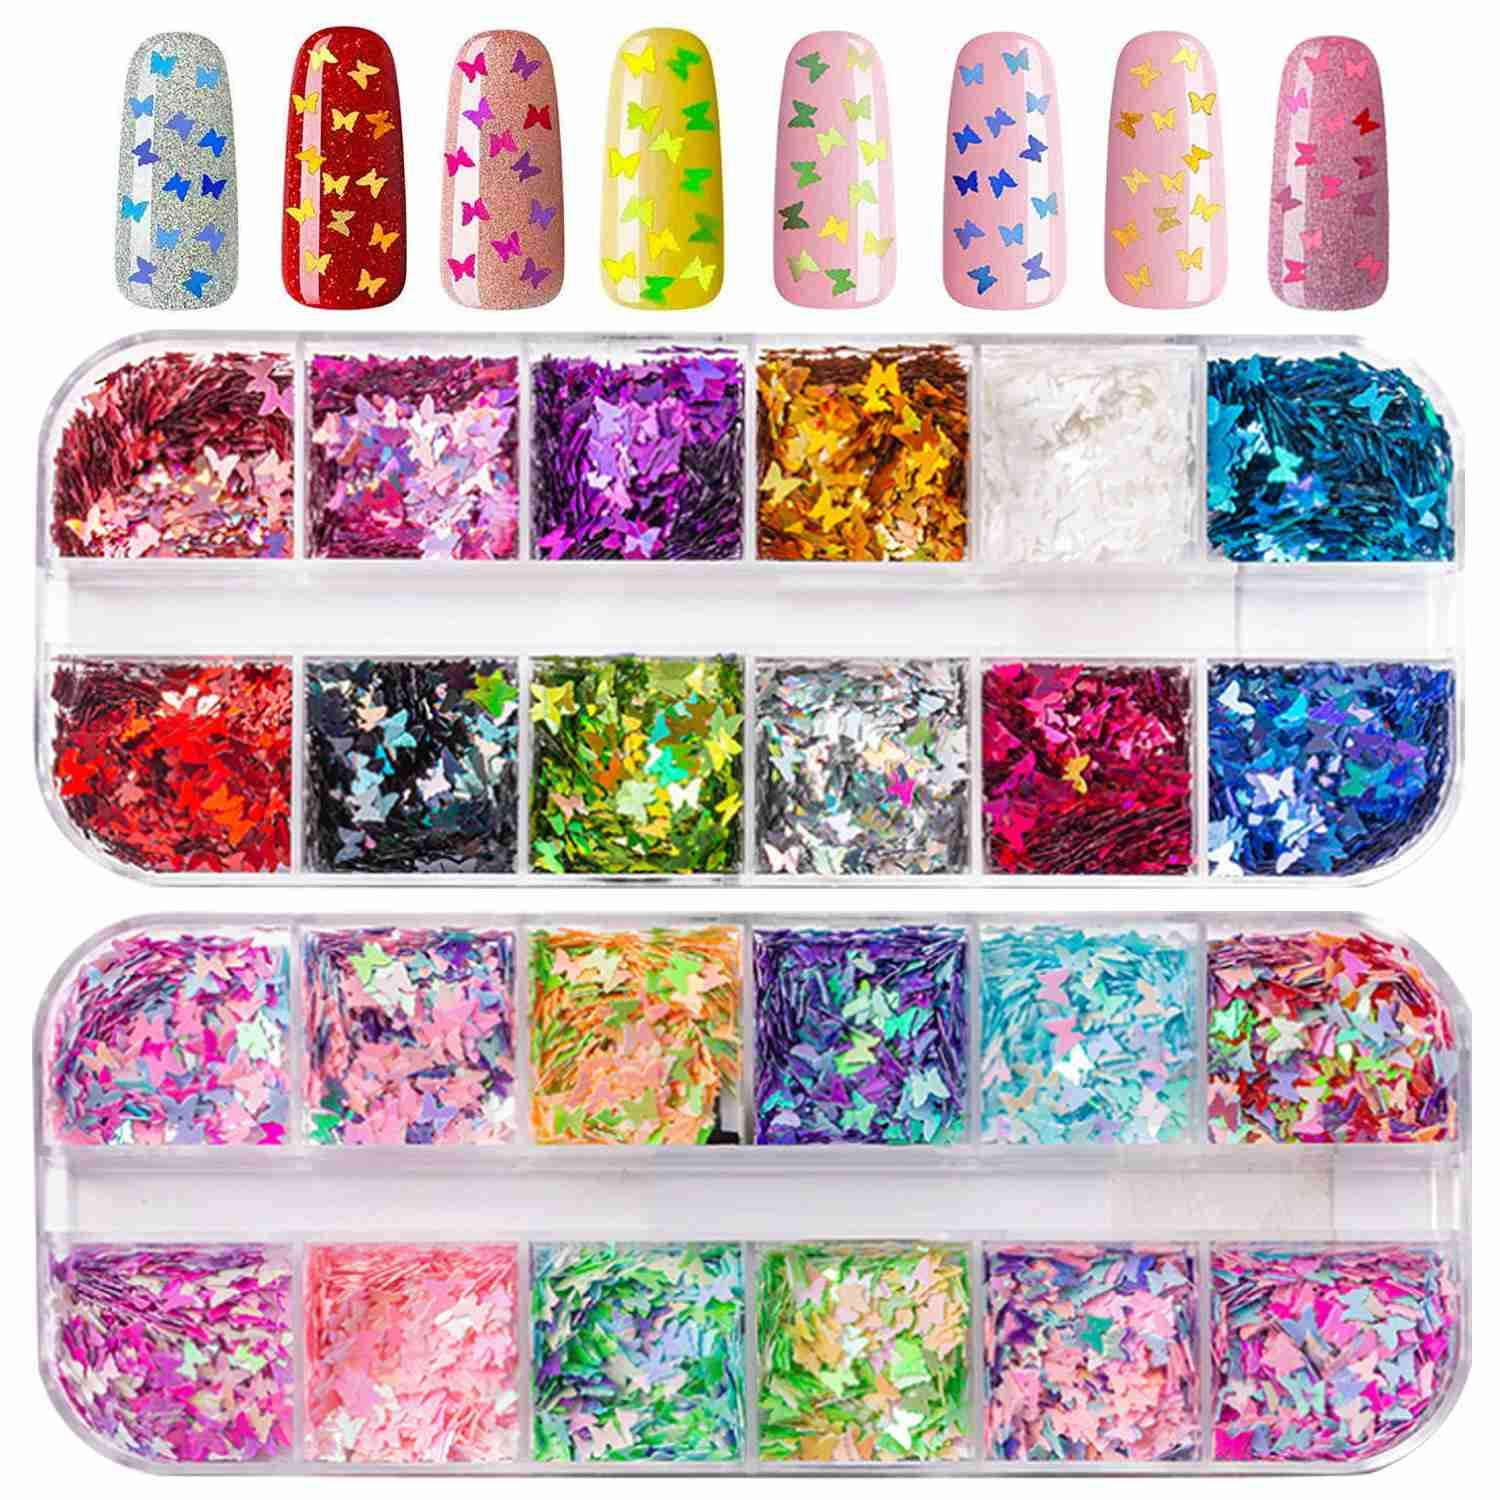 24 Colors/Set Nail Glitter Sequins - Nail Butterfly Flakes Holographic Glitter Nail Art Supplies Accessories - Nail Sequins for Nail Art Decoration, Acrylic Nails, Face, Eye, Hair and Body